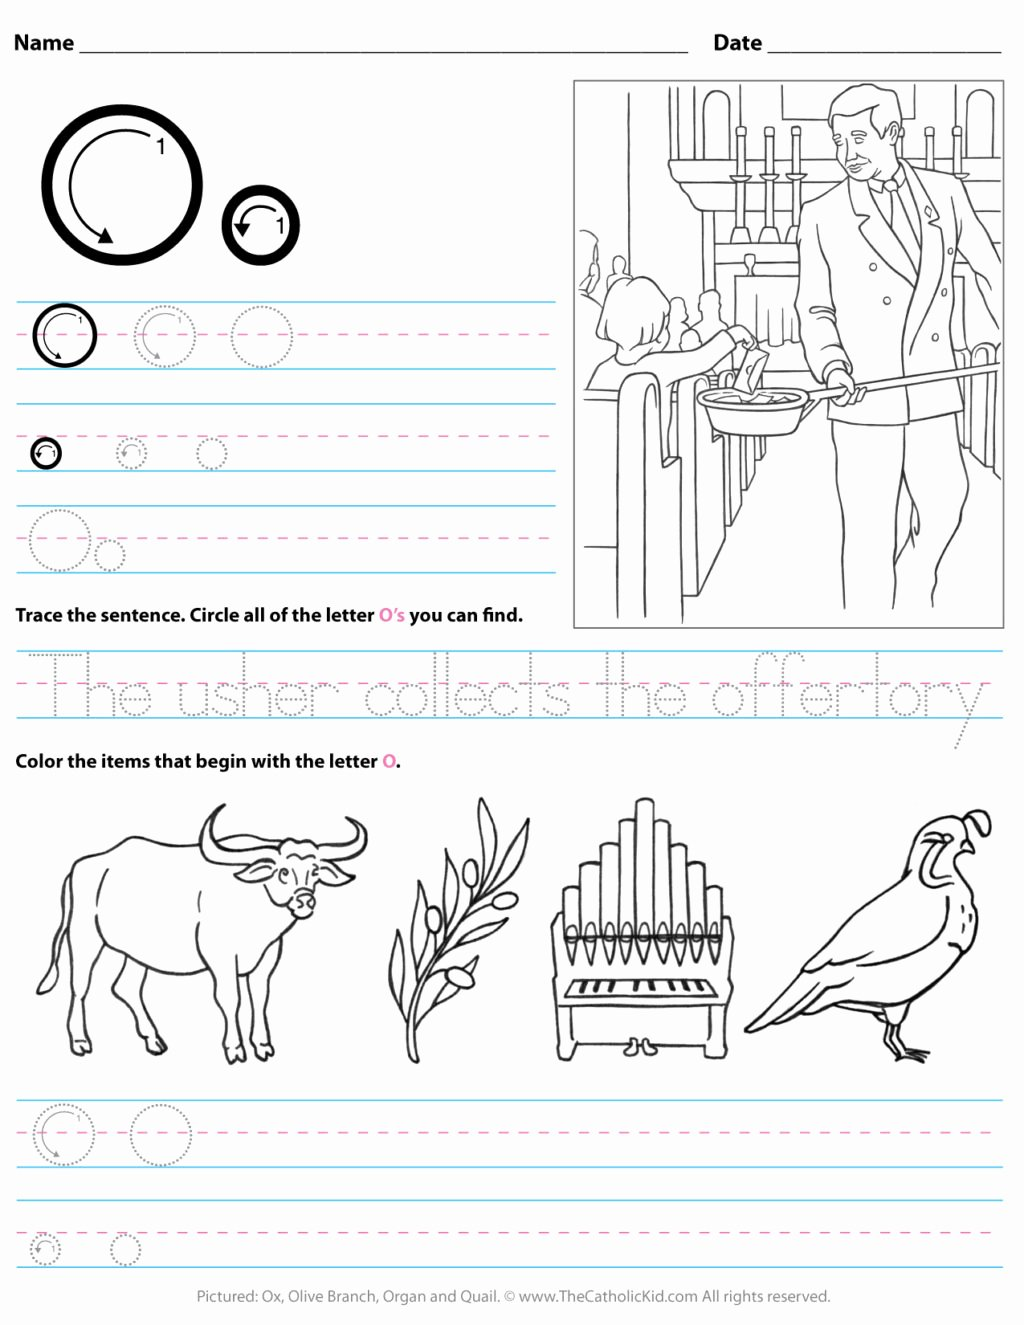 Letter O Worksheets for Preschoolers Fresh Worksheet Catholic Alphabet Letter O Worksheet Preschool